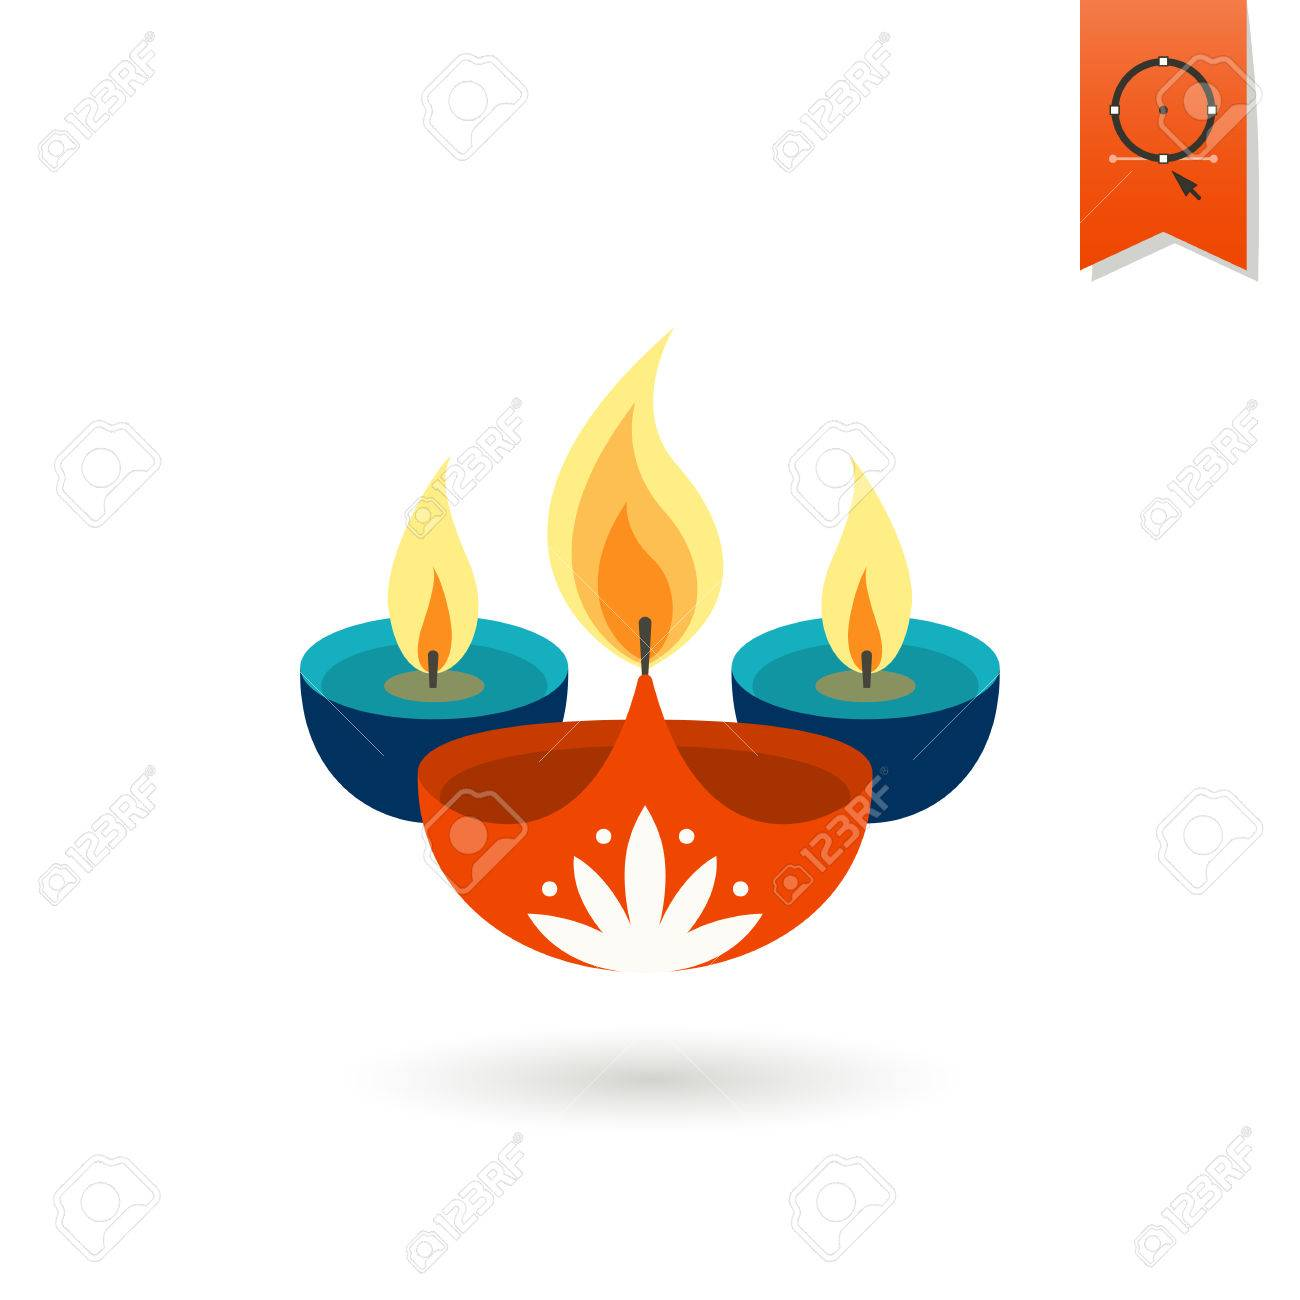 10,445 Indian Lamp Stock Vector Illustration And Royalty Free Indian ... for Fire Lamp Clipart  557yll